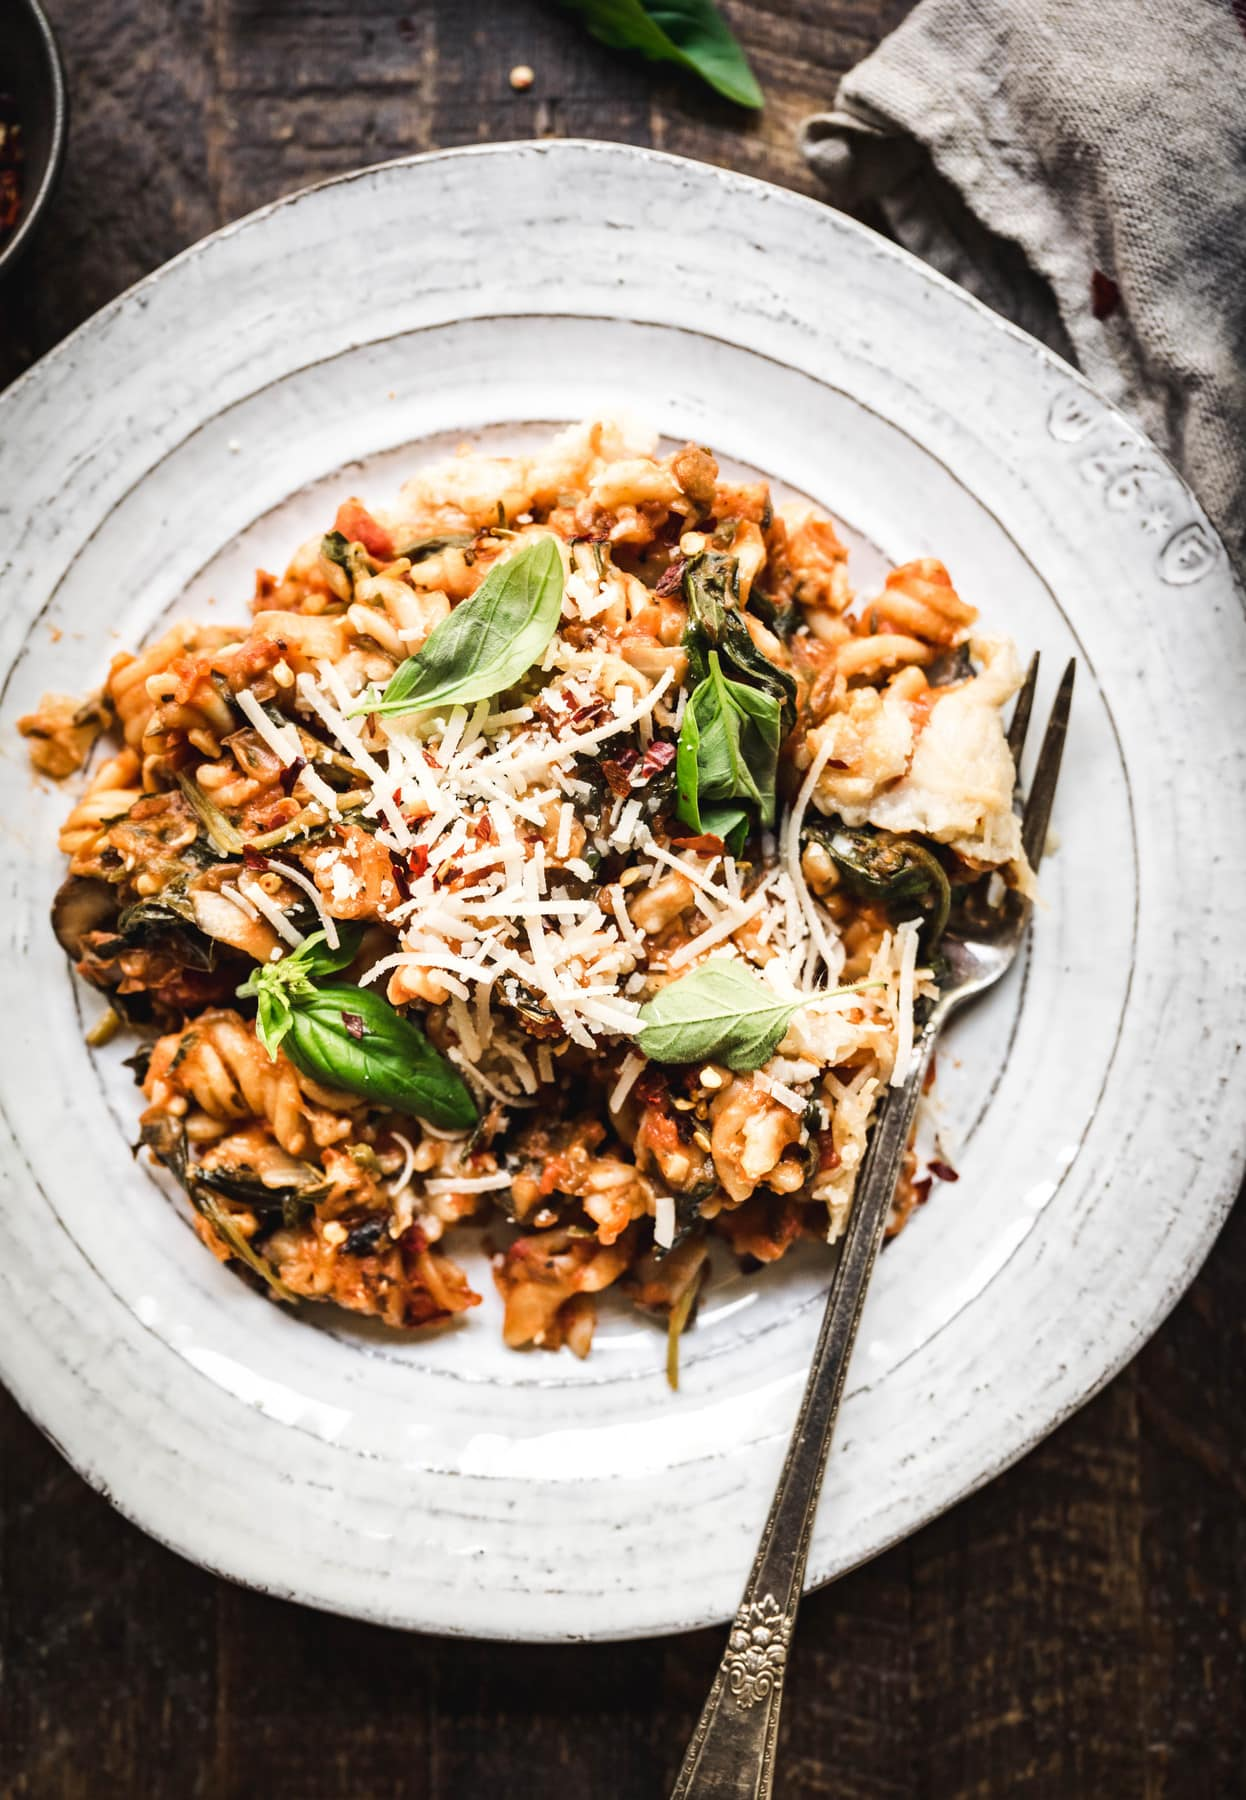 overhead view of healthy vegan gluten free pasta bake on a white plate with fork